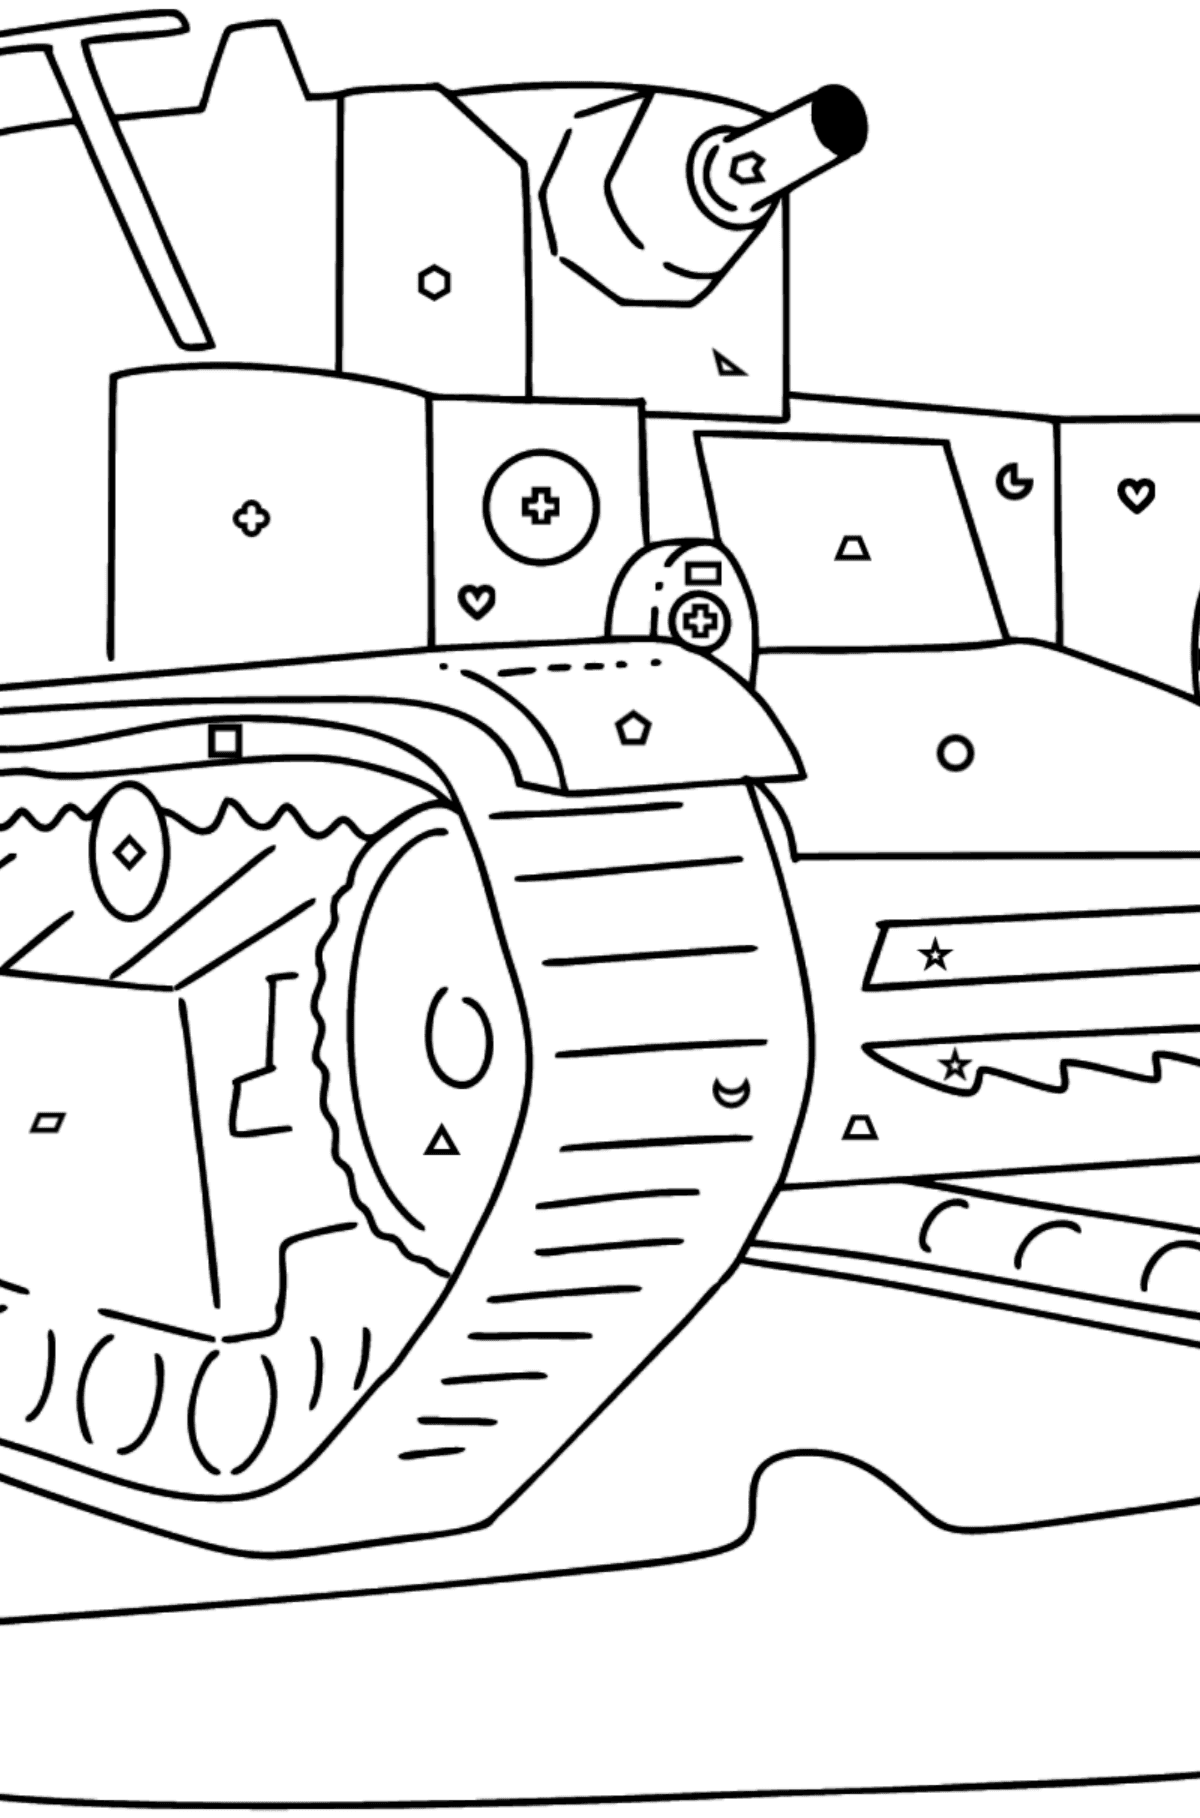 Tank T 28 coloring page - Coloring by Geometric Shapes for Kids